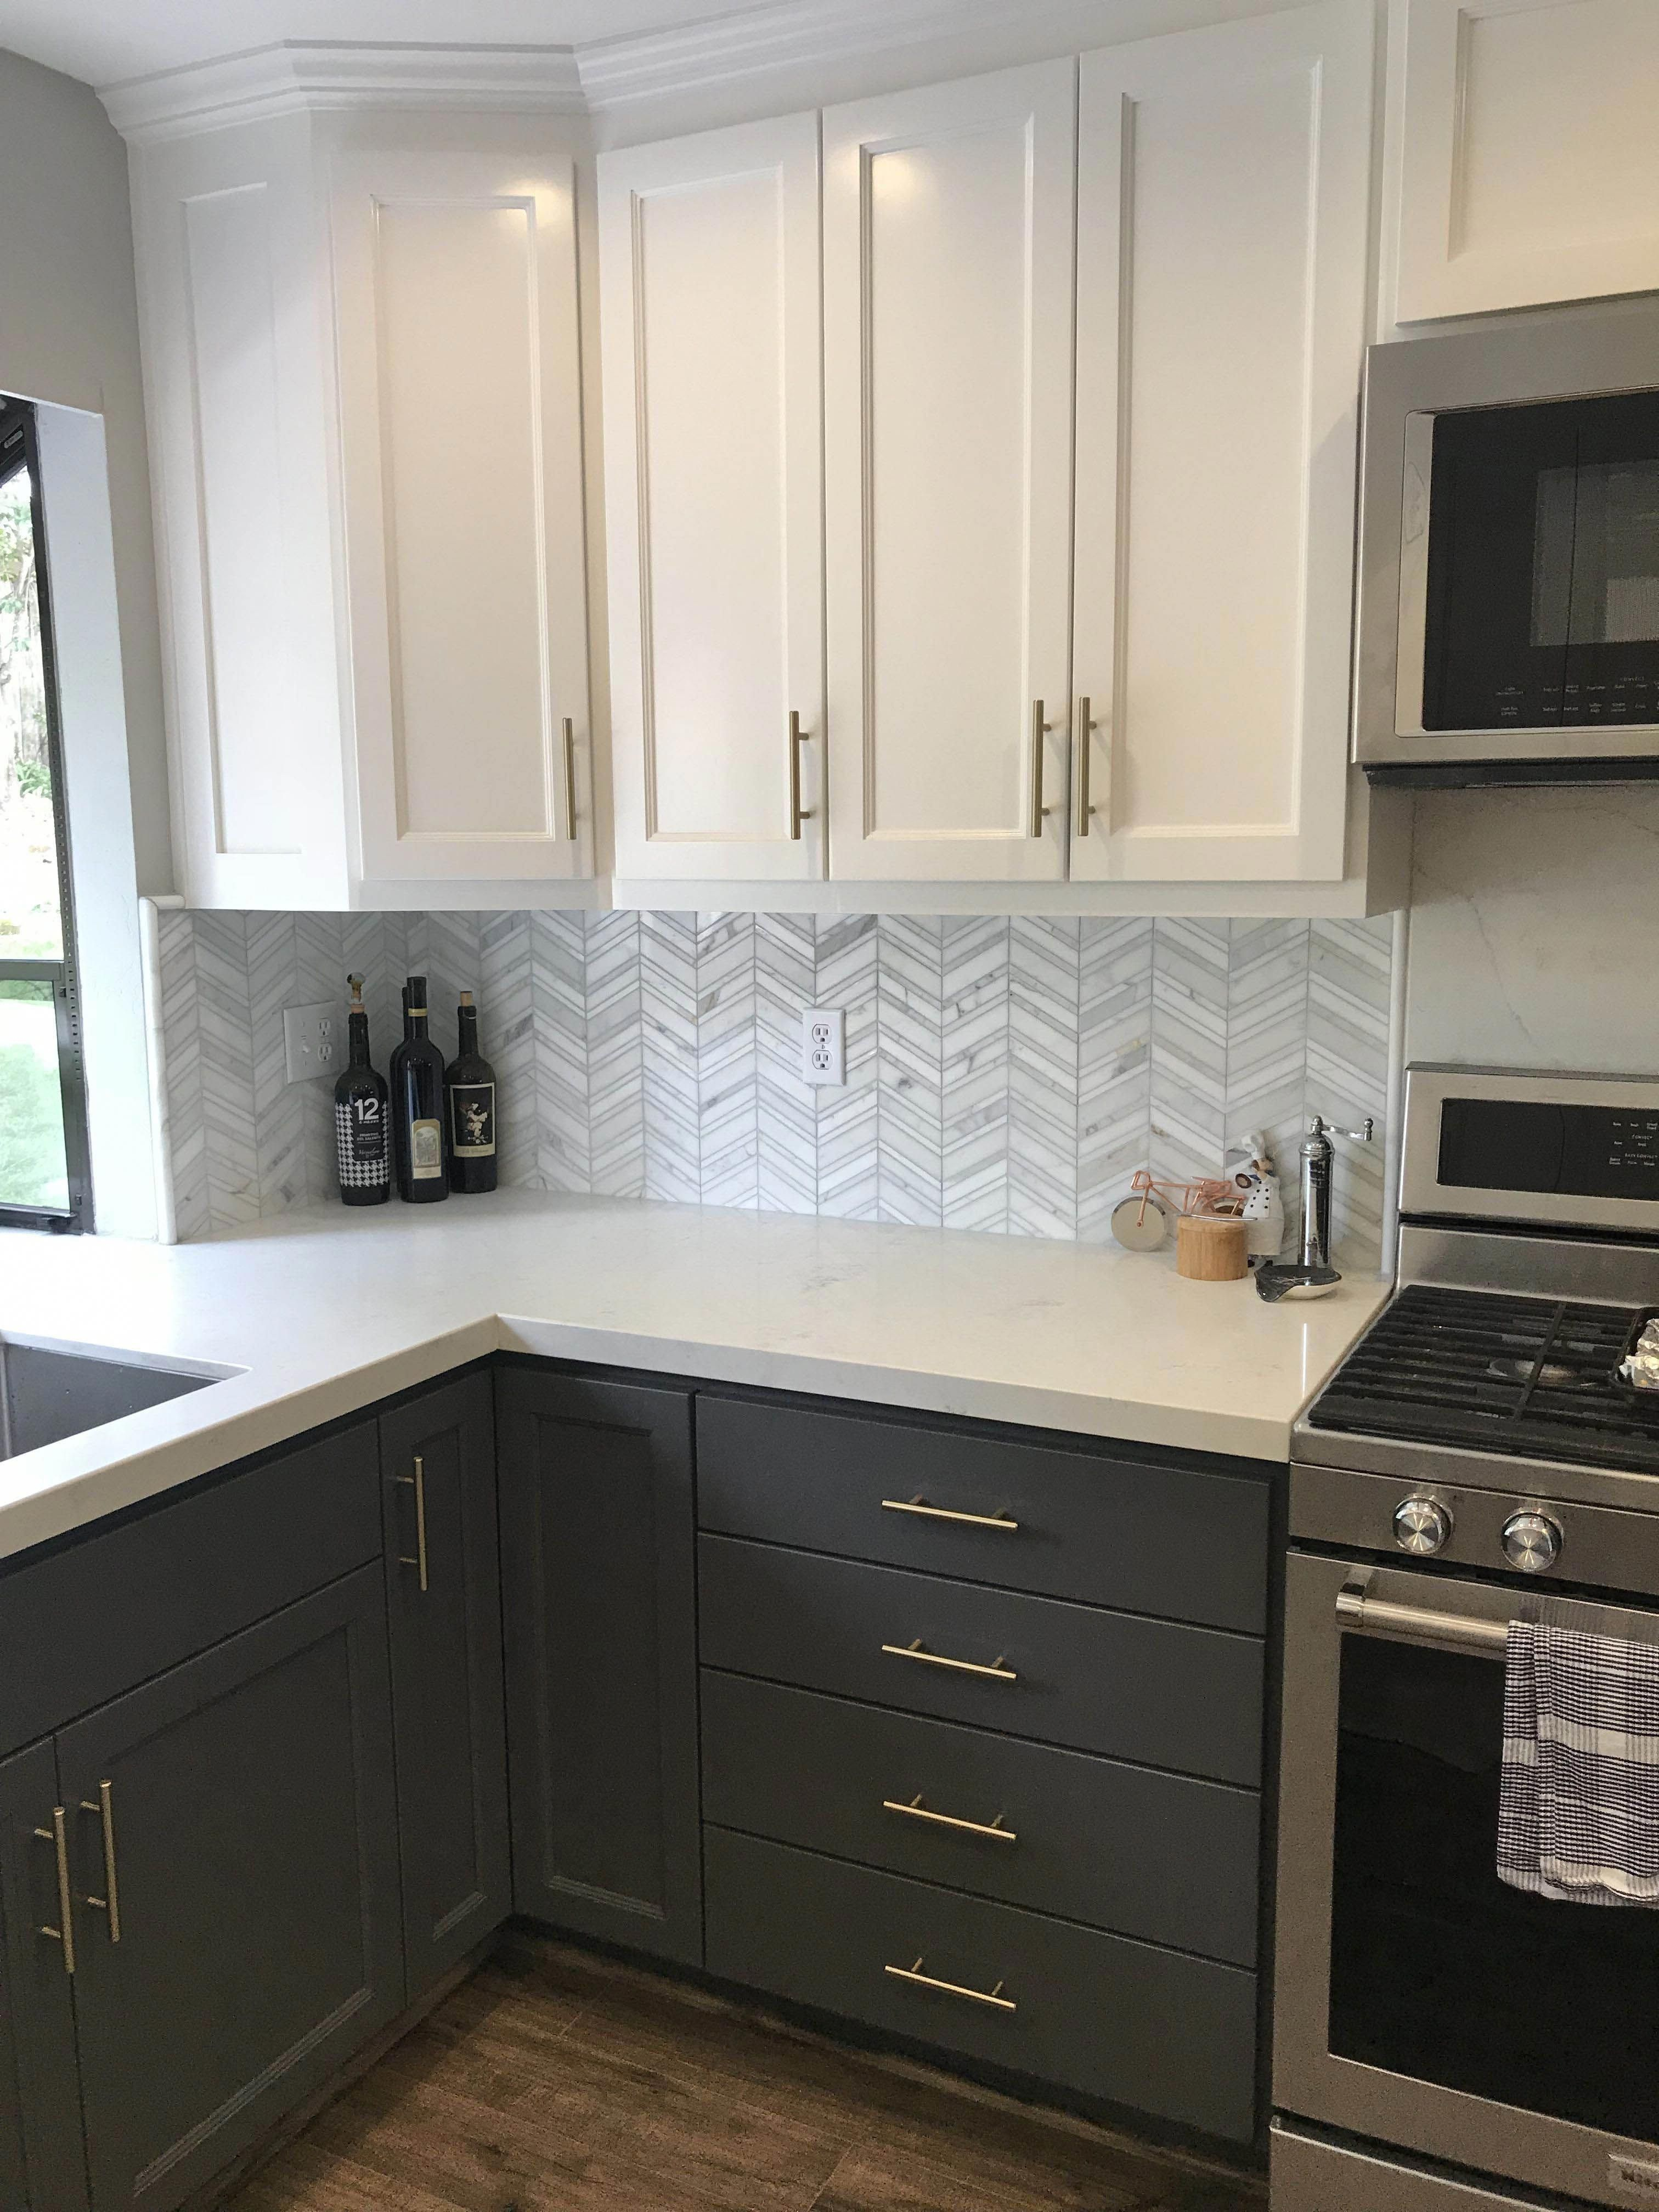 Different Pictures Of Gray Kitchen Cabinets With Black Appliances To Inspire Kitchen Cabinets With Black Appliances Grey Kitchen Cabinets New Kitchen Cabinets